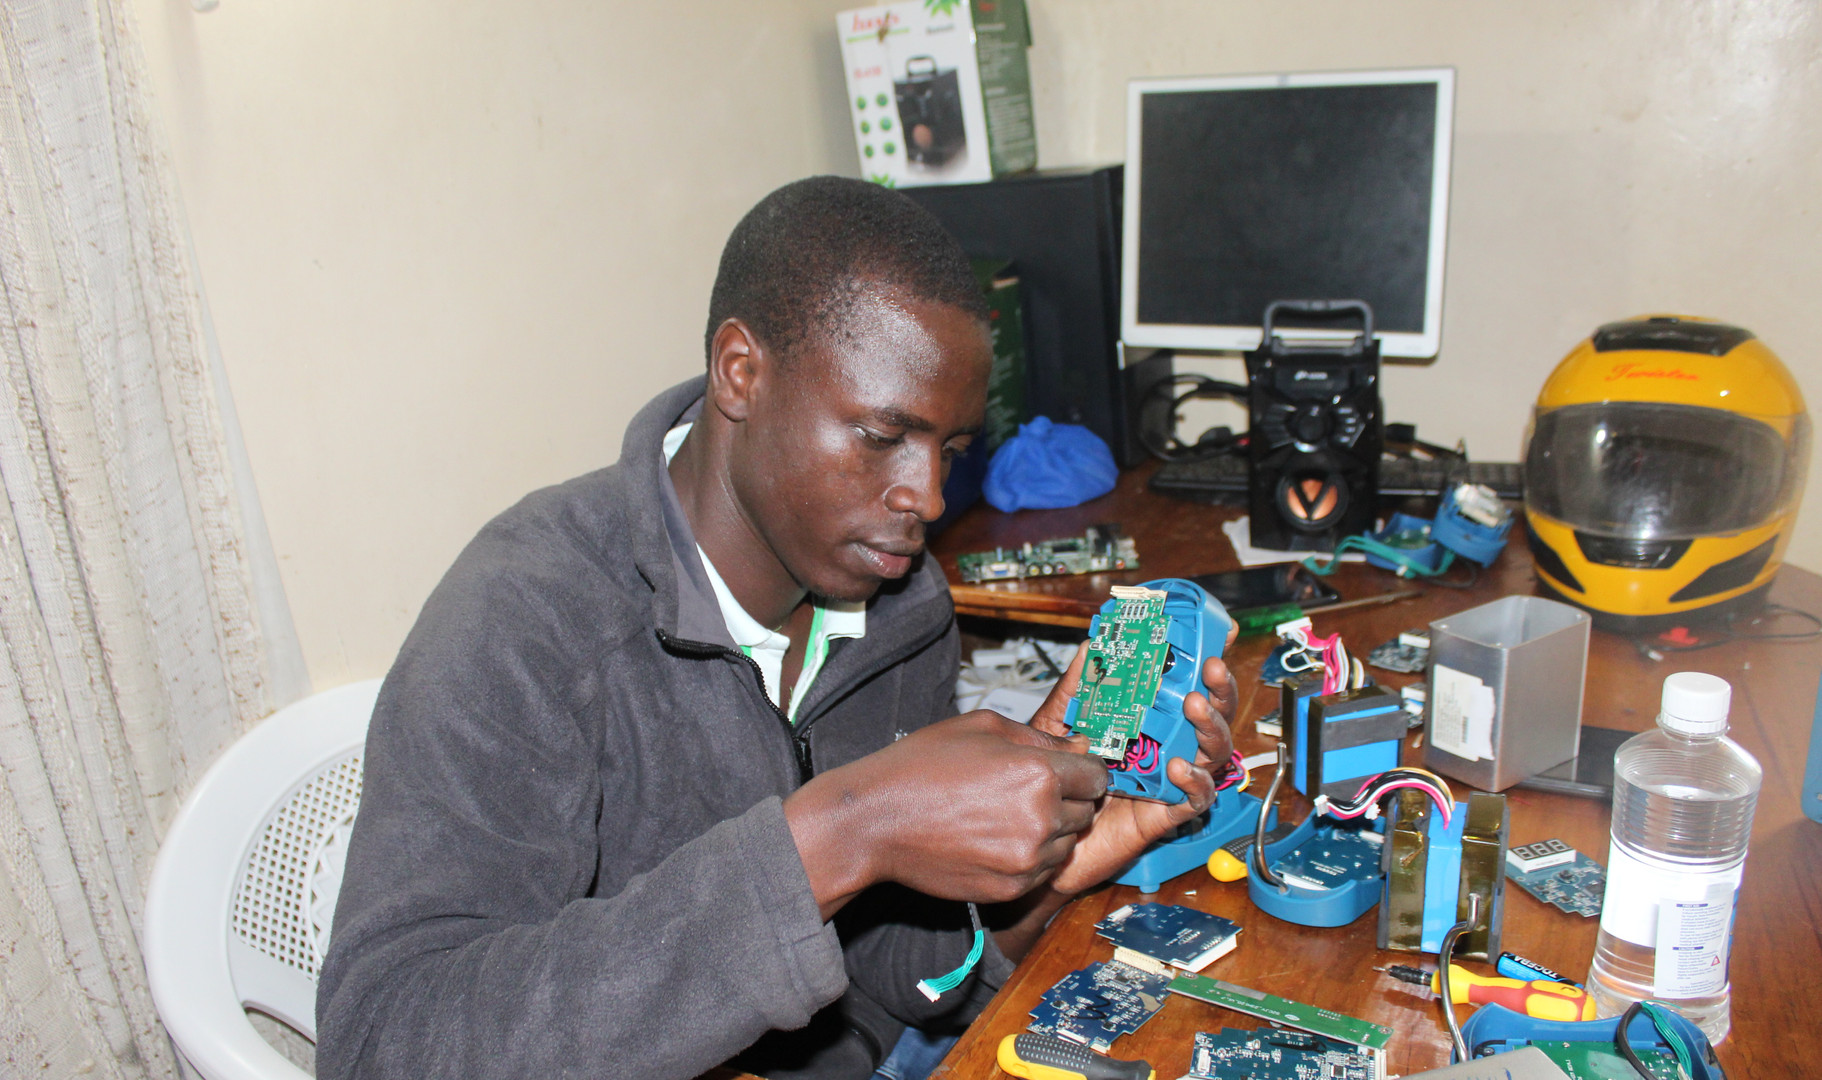 Eliud repairing a client's battery